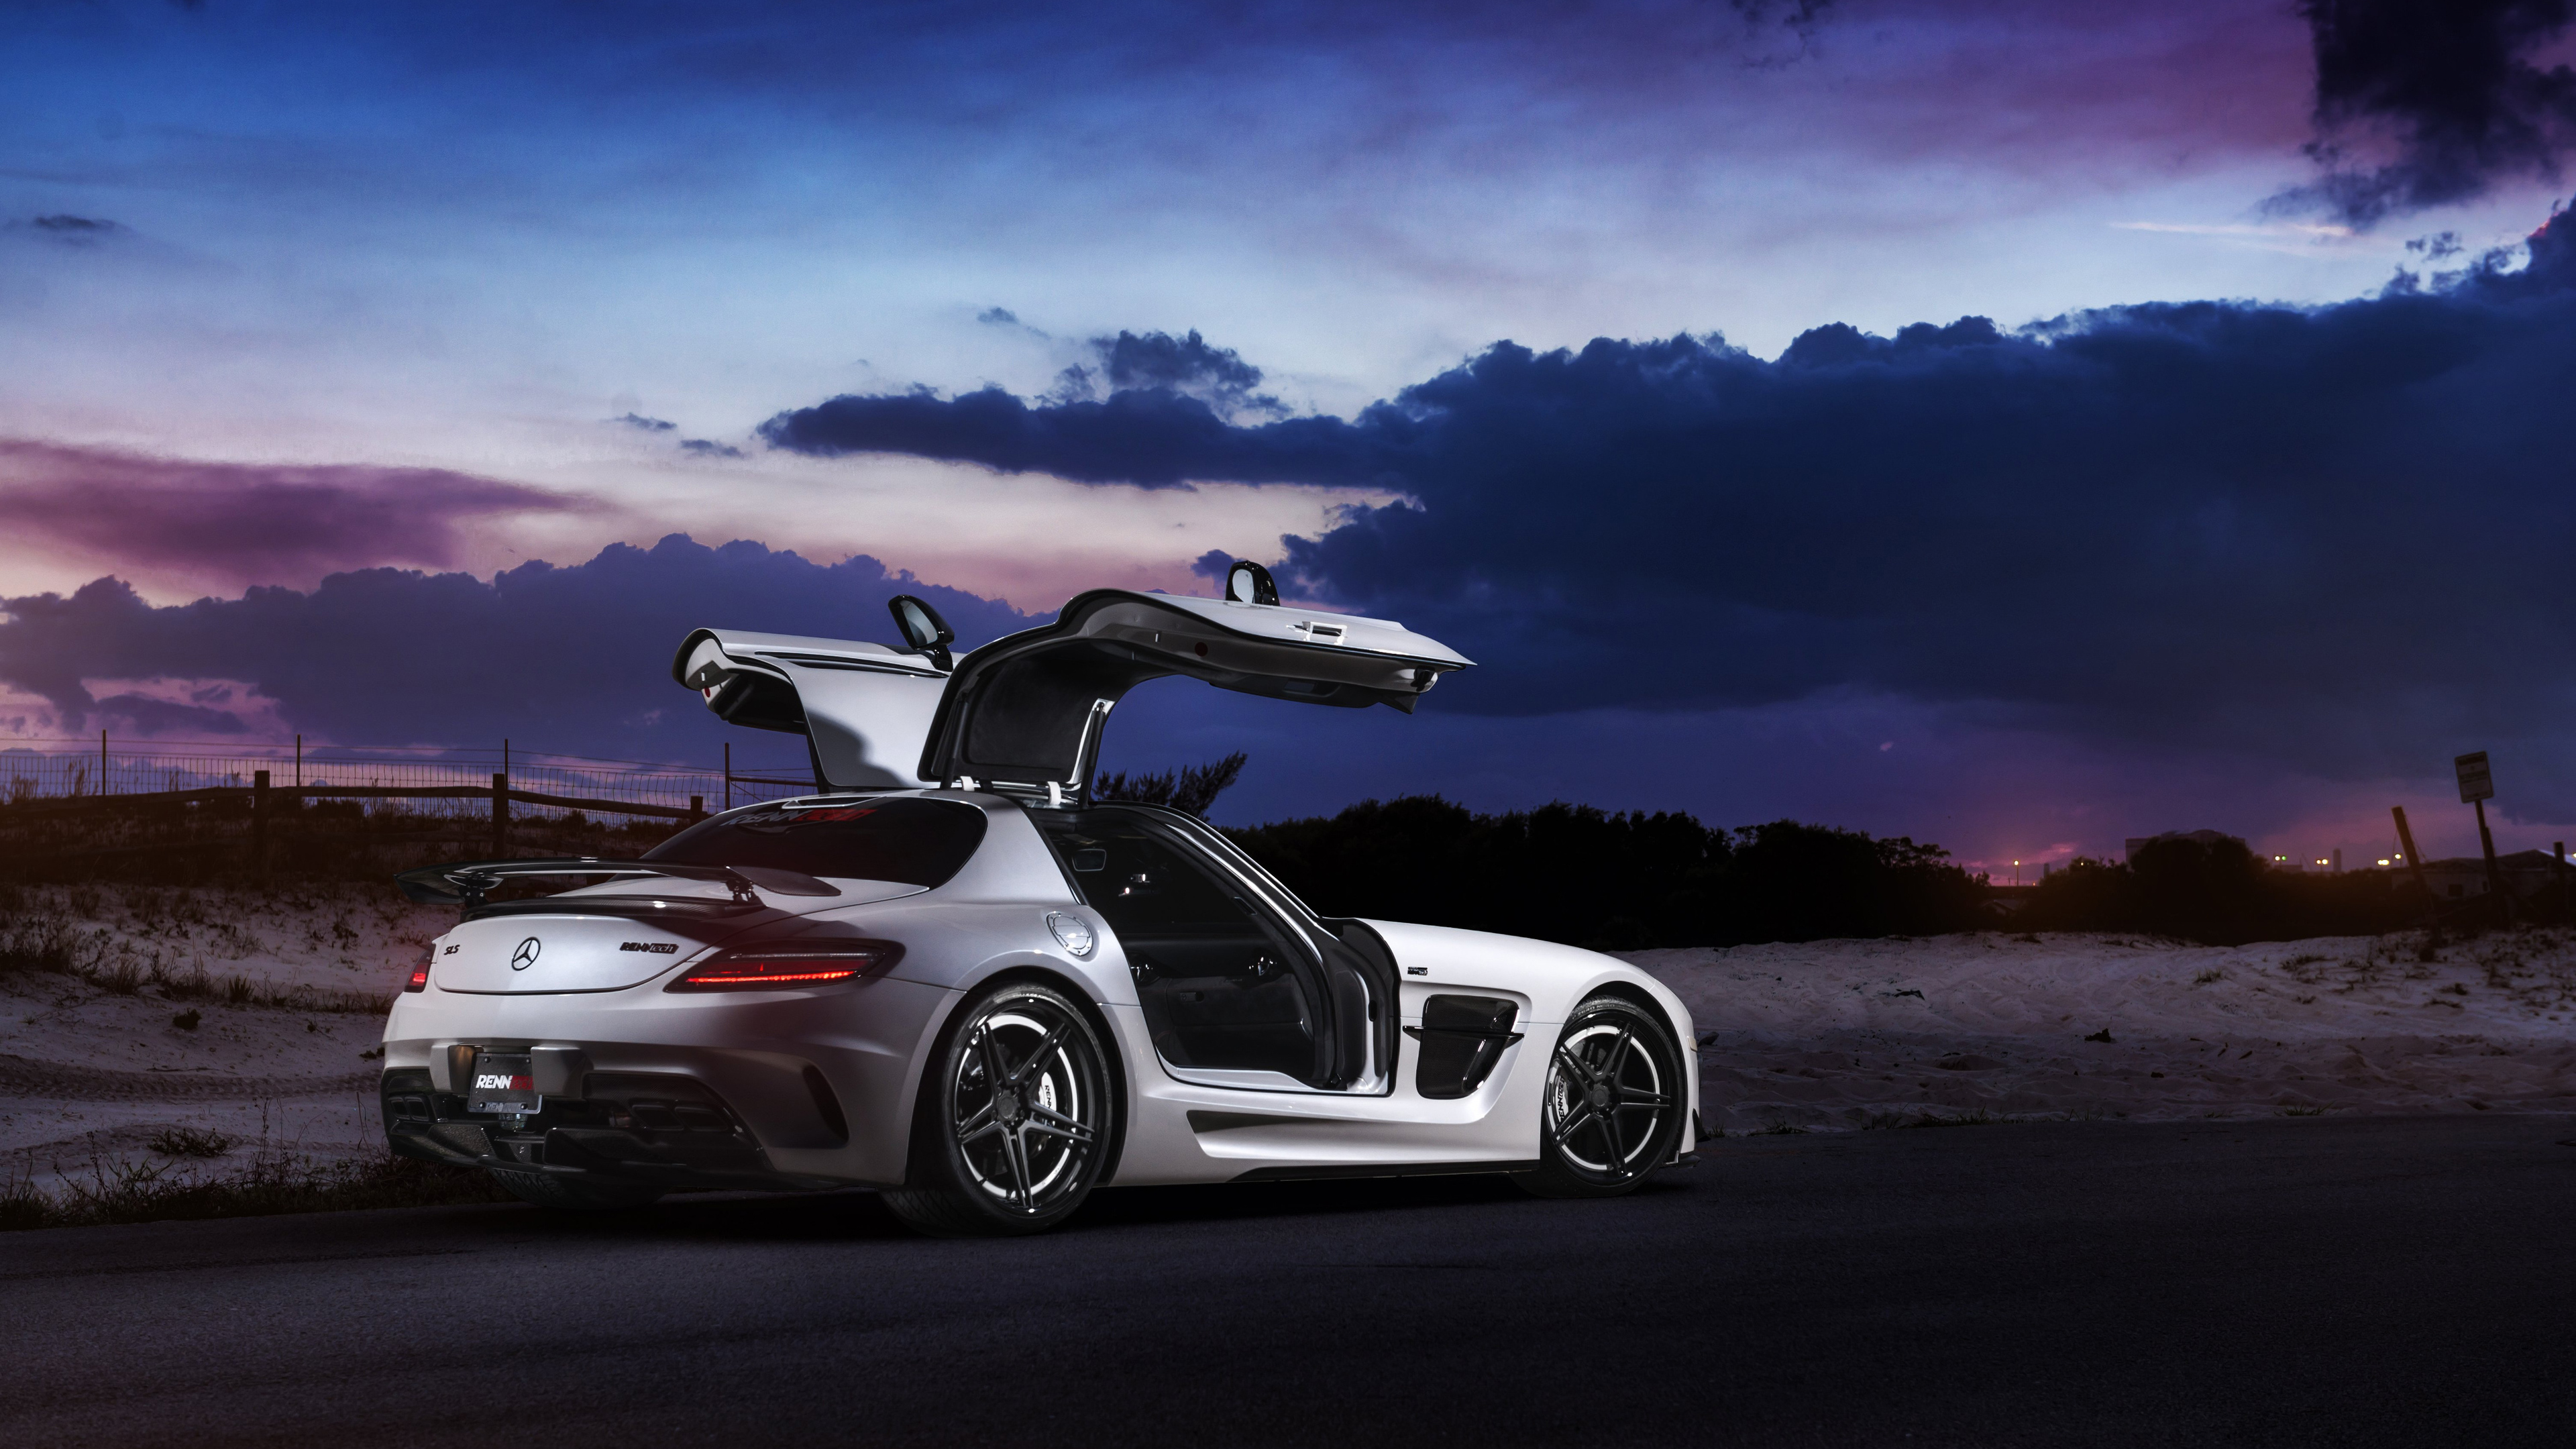 renntech mercedes benz sls black series 4k 1556185250 - Renntech Mercedes Benz Sls Black Series 4k - sls wallpapers, mercedes wallpapers, mercedes benz wallpapers, hd-wallpapers, cars wallpapers, amg wallpapers, 4k-wallpapers